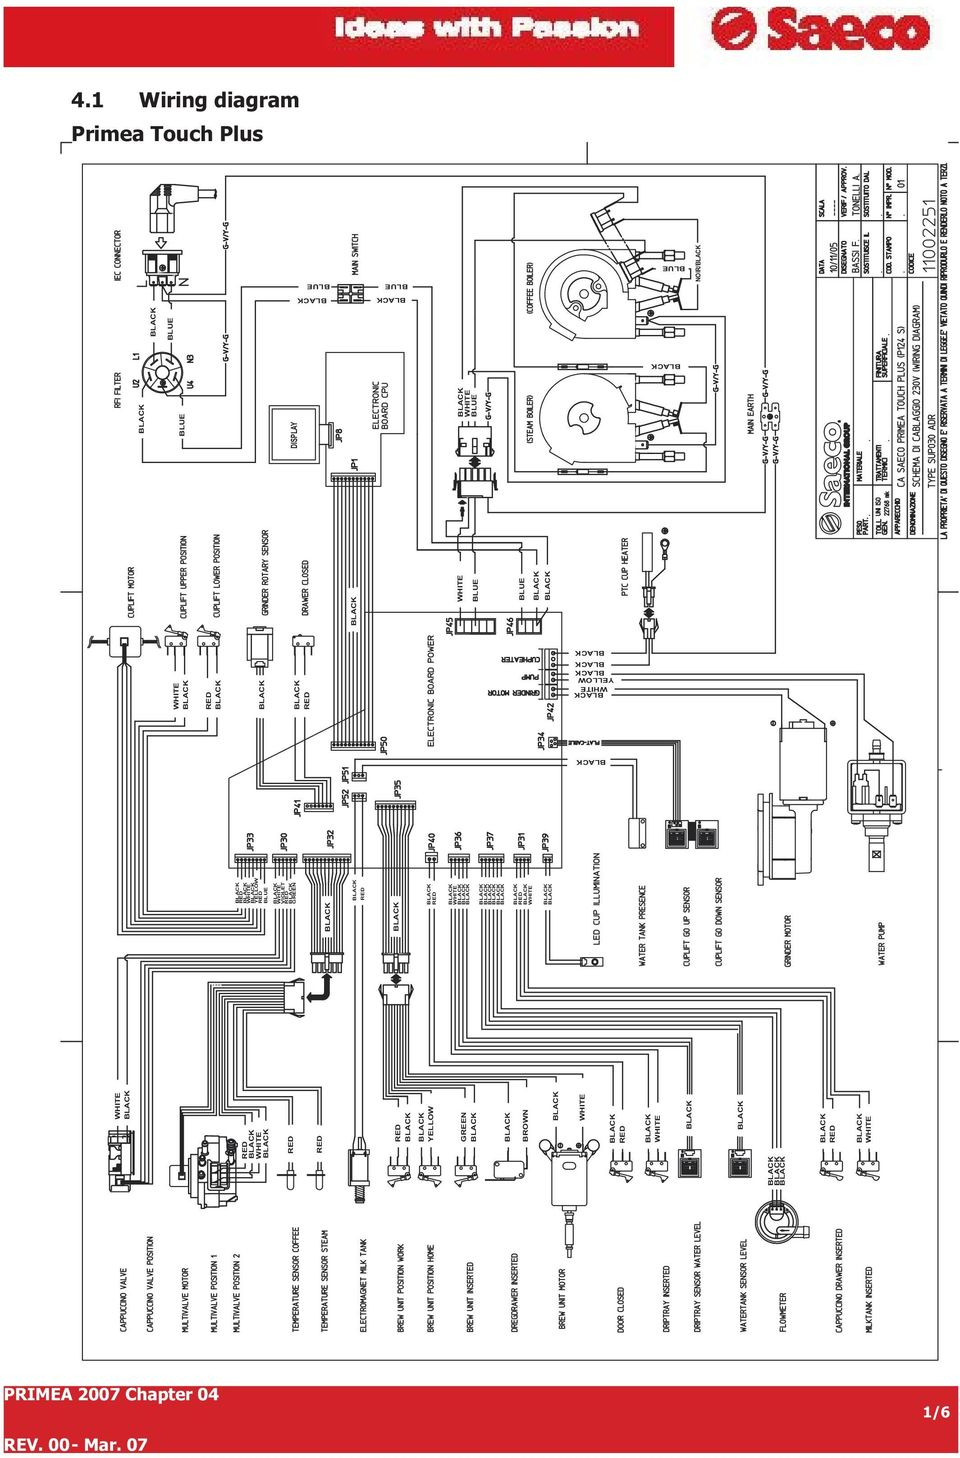 Technical Service Manual Pdf 1 Touch Space Heater Wiring Diagram Plus